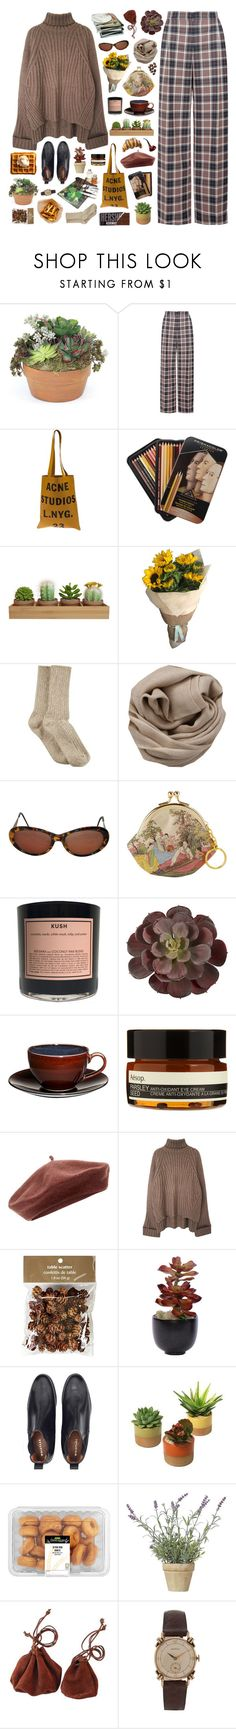 """""""the artist"""" by child-of-the-tropics ❤ liked on Polyvore featuring Tory Burch, Acne Studios, HUE, Brunello Cucinelli, Yves Saint Laurent, Boy Smells, Mikasa, Aesop, Accessorize and Pier 1 Imports"""